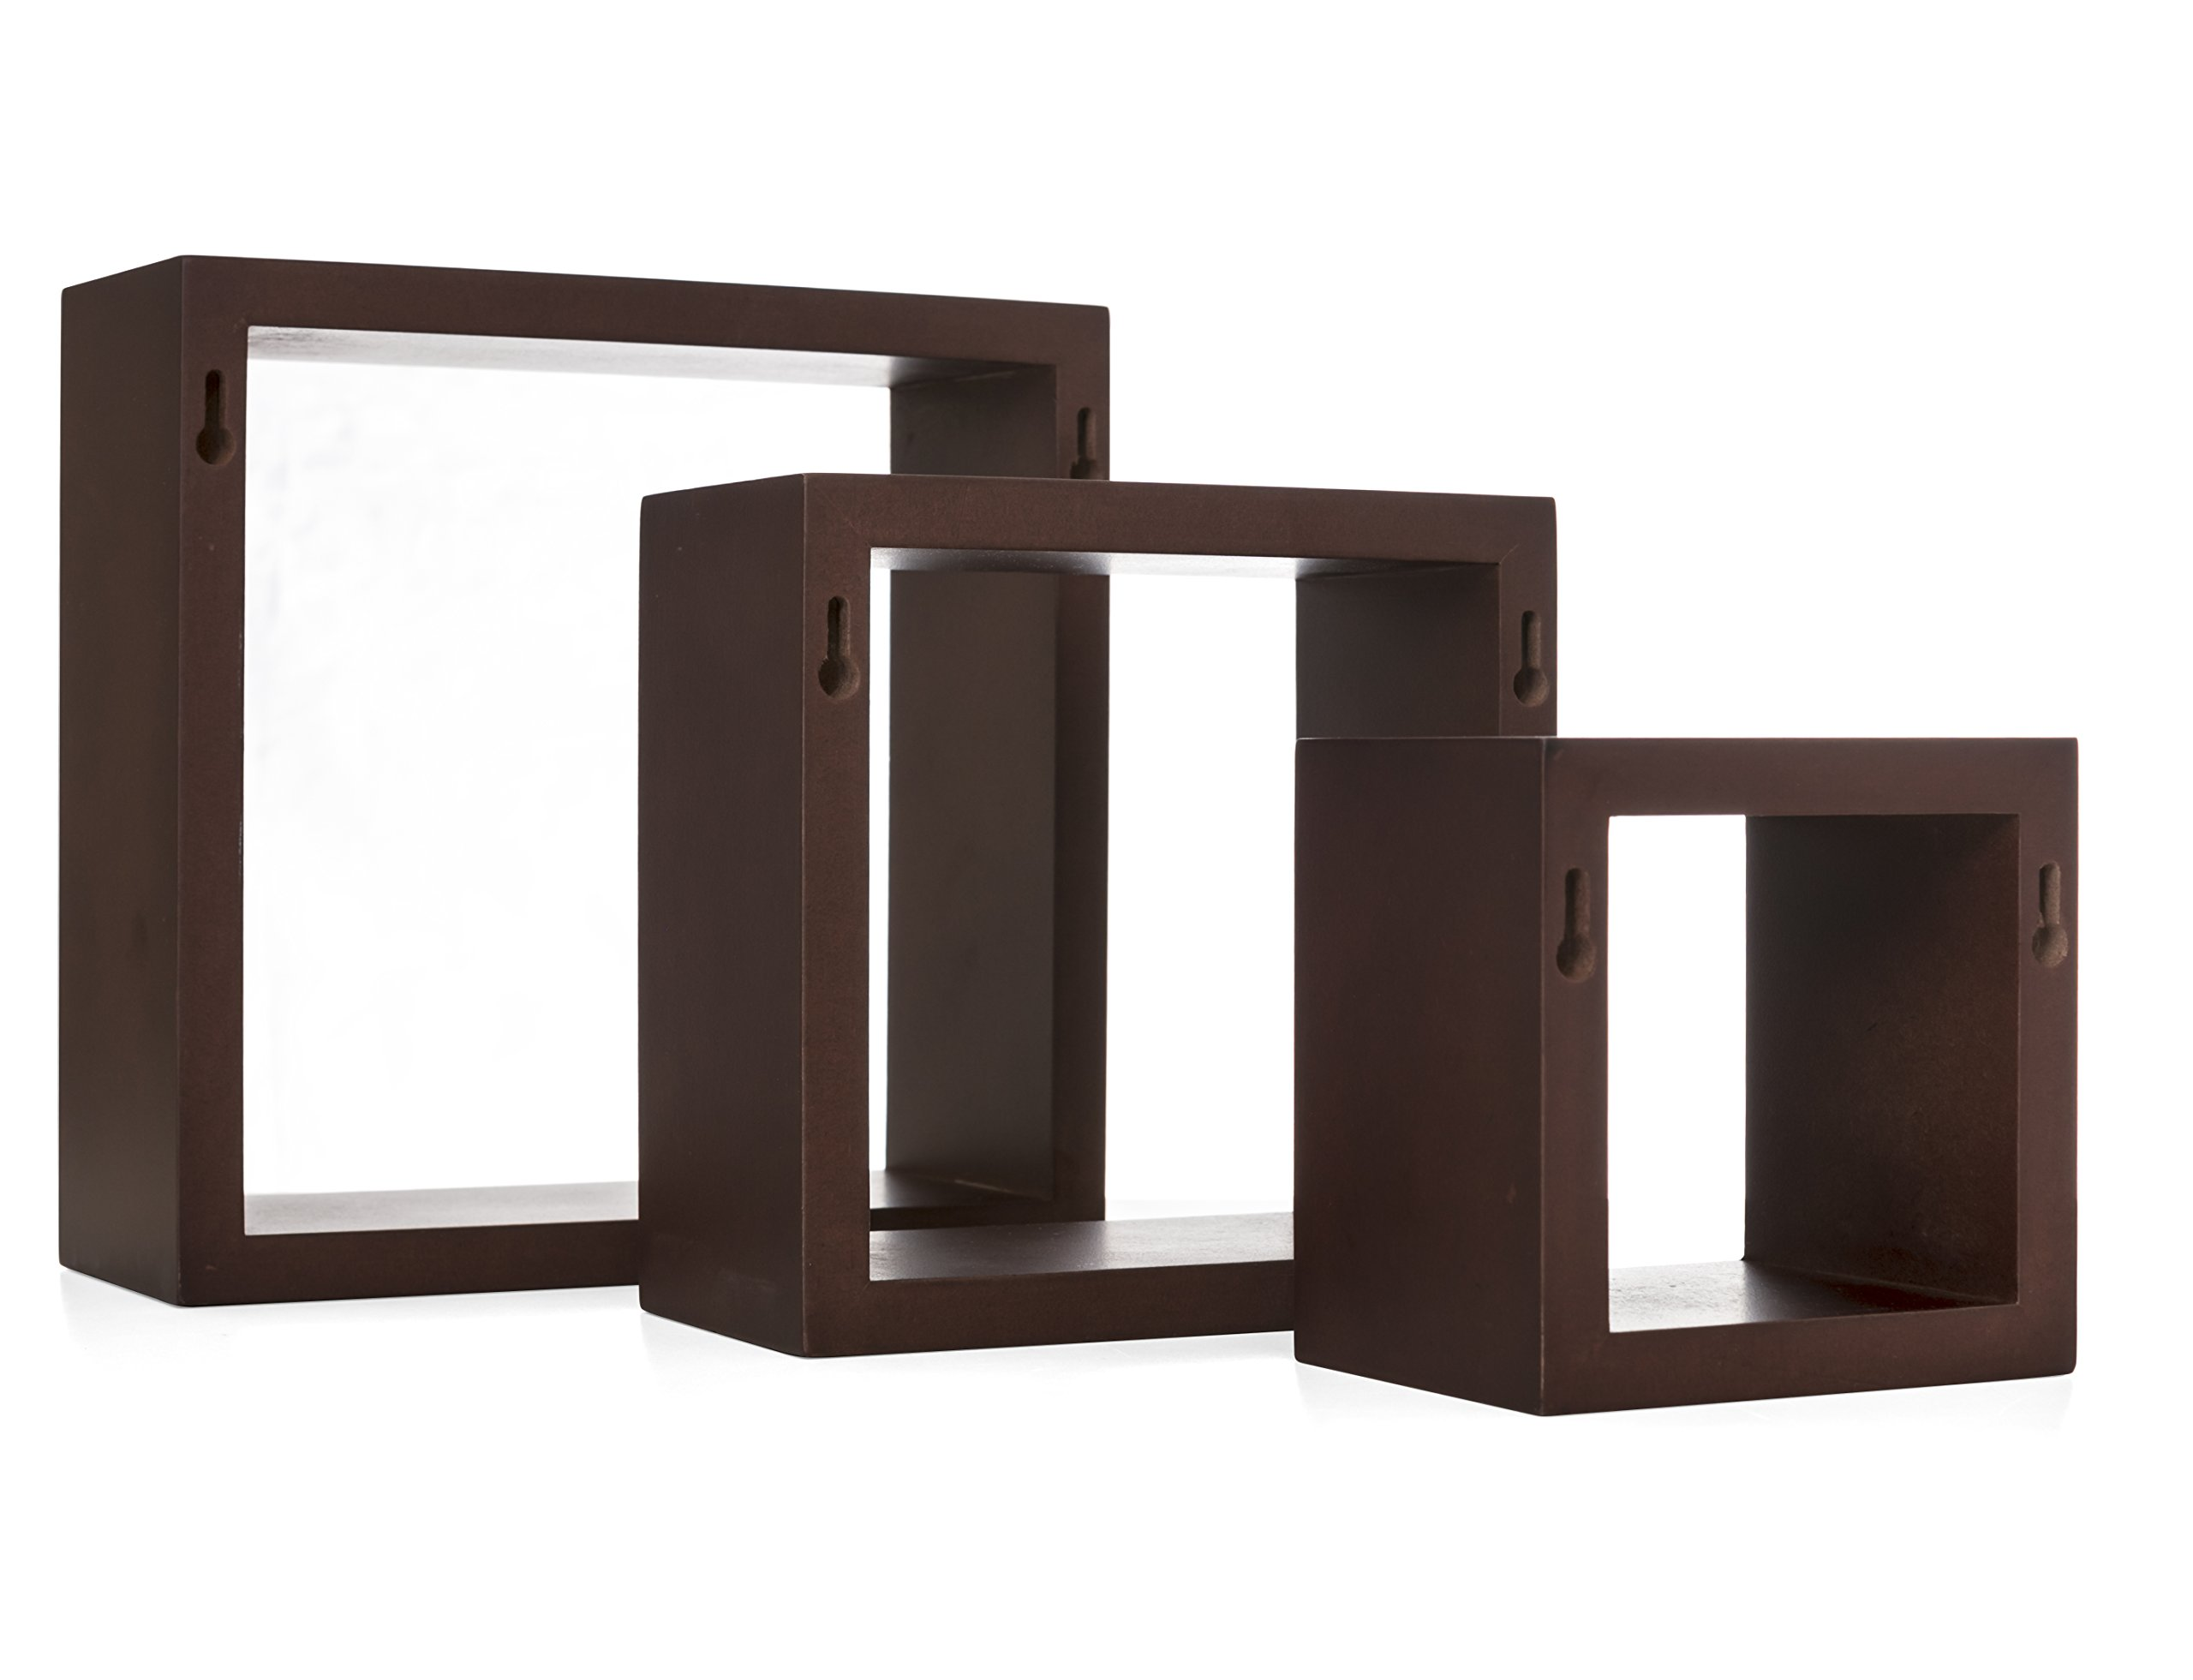 kieragrace Cubbi 3-Piece Shelf Set, Espresso - 3-piece wall-mounted shelf set offers a clean, contemporary display style MDF construction in three sizes: small, medium, and large All cubes are 4 inches deep - wall-shelves, living-room-furniture, living-room - 71ErSW ONZL -